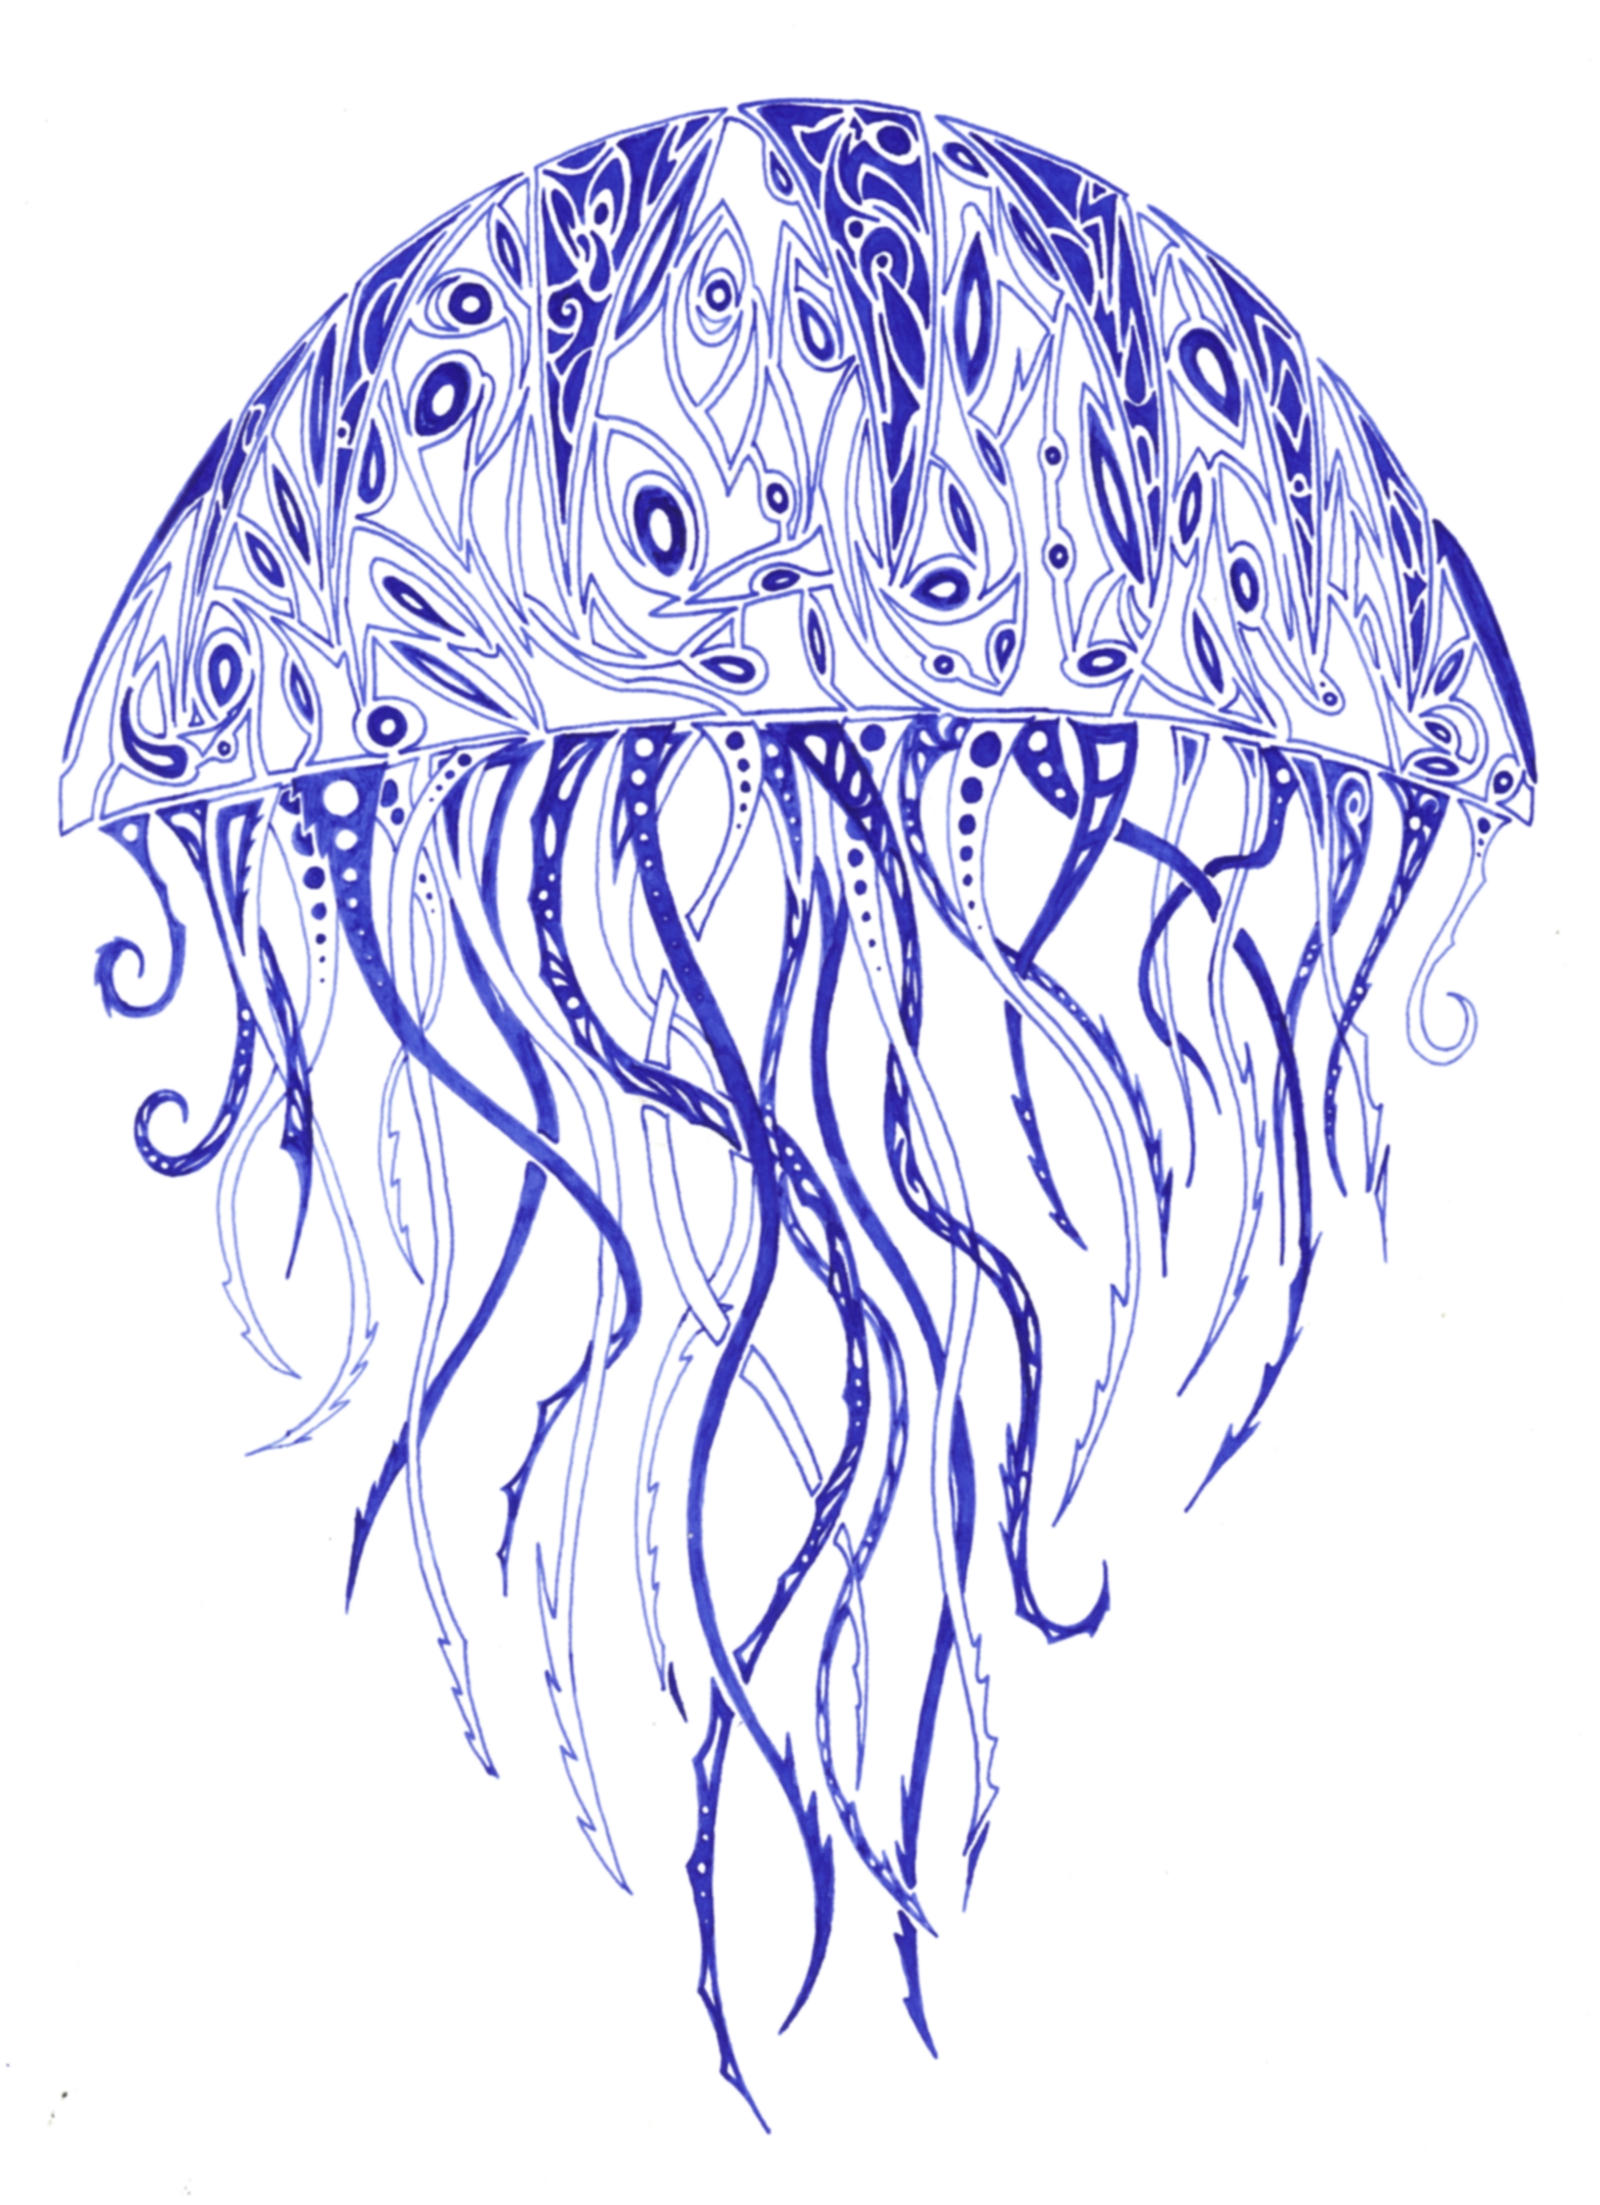 ce0cce87a Tribal jellyfish tattoo designs - photo#5